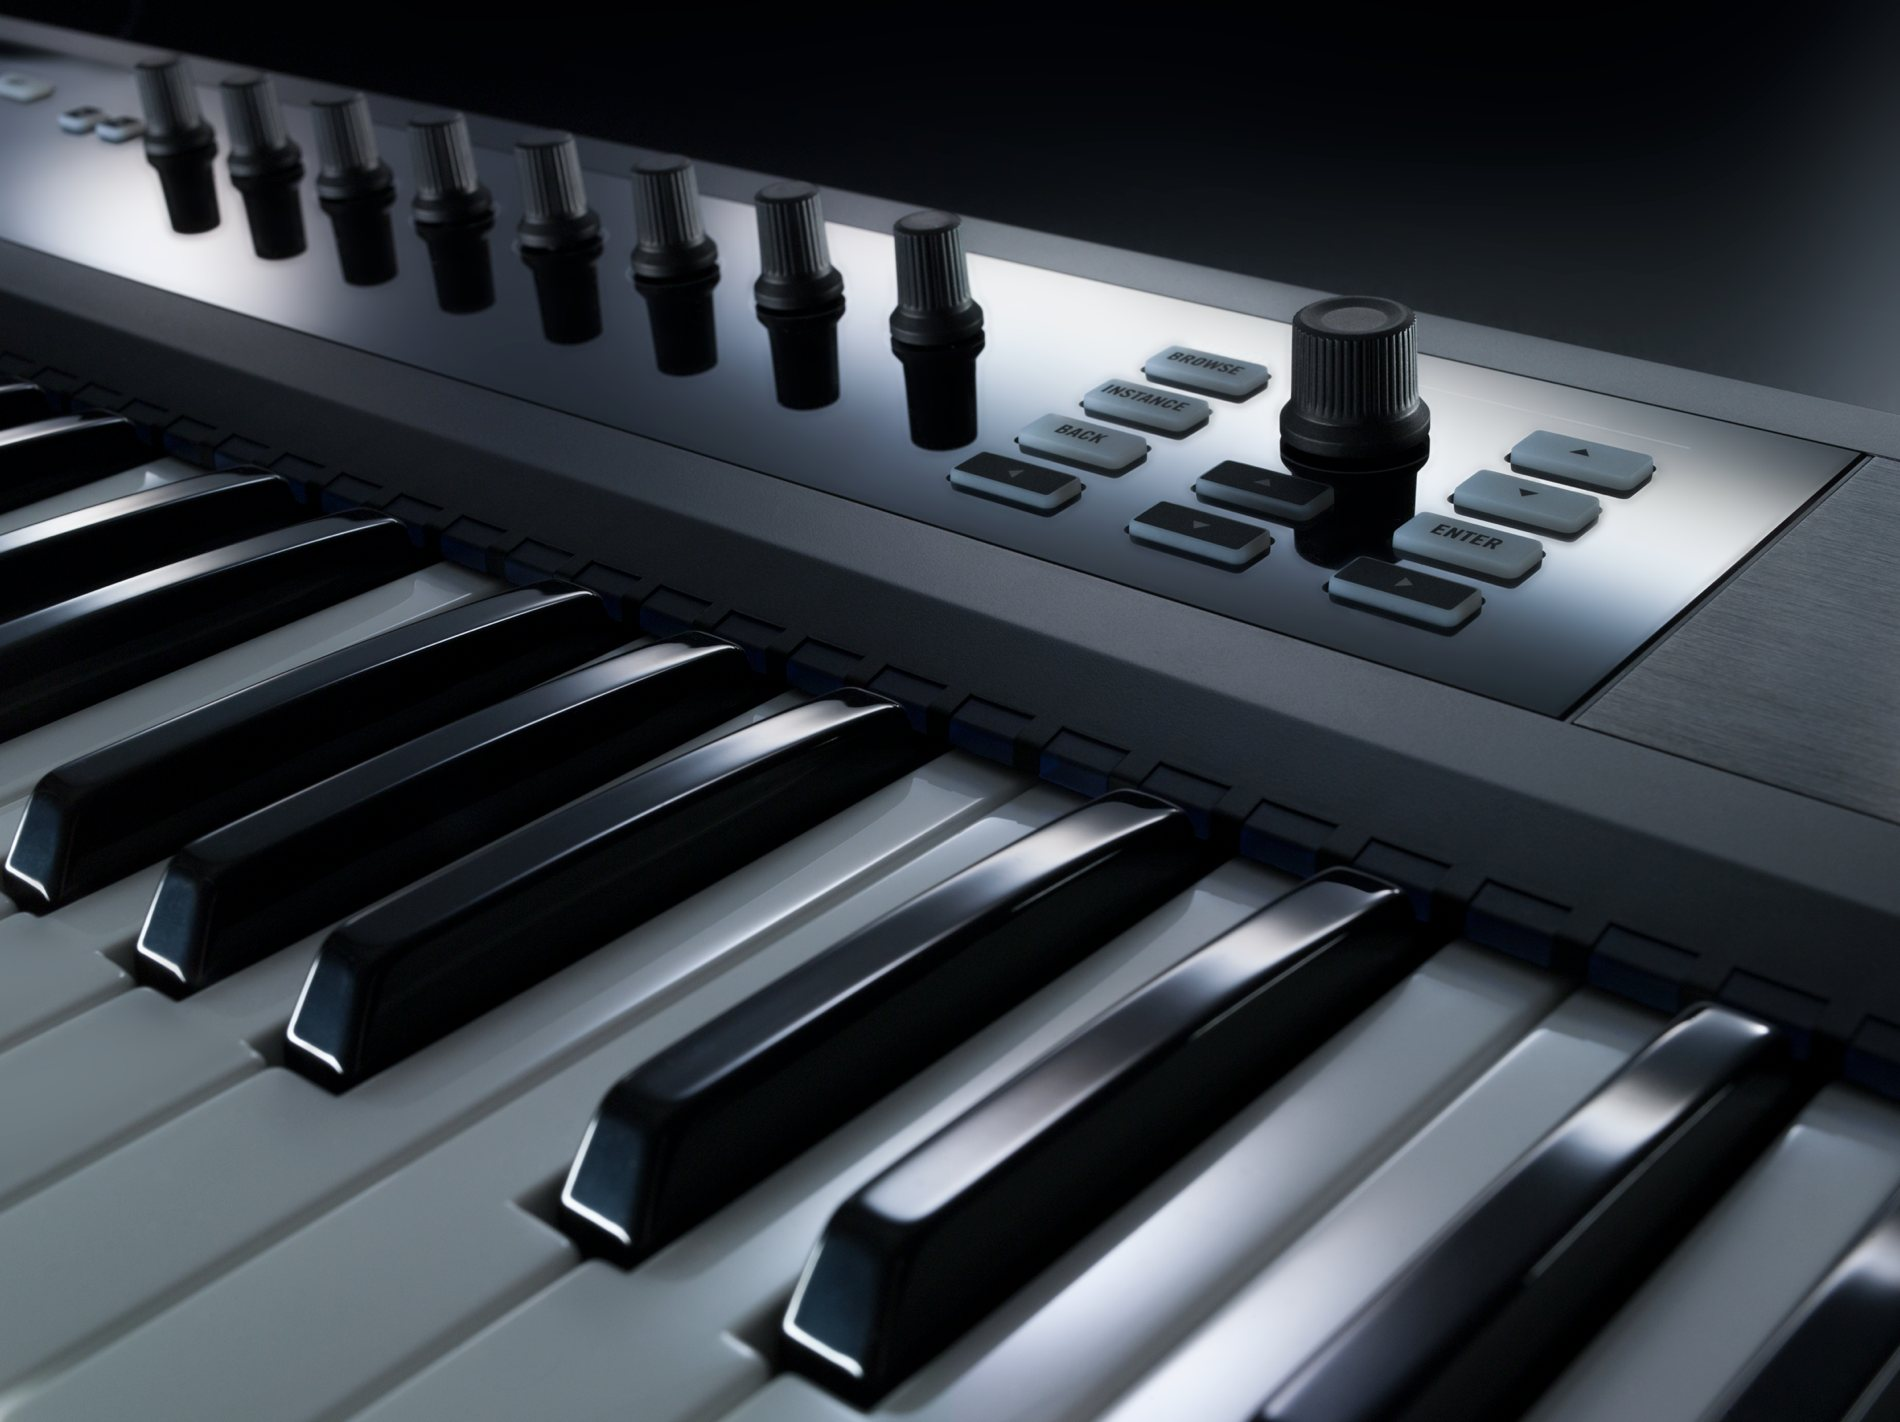 NI Officially Reveals Komplete 10 Kontrol Keyboards [Details 1900x1422